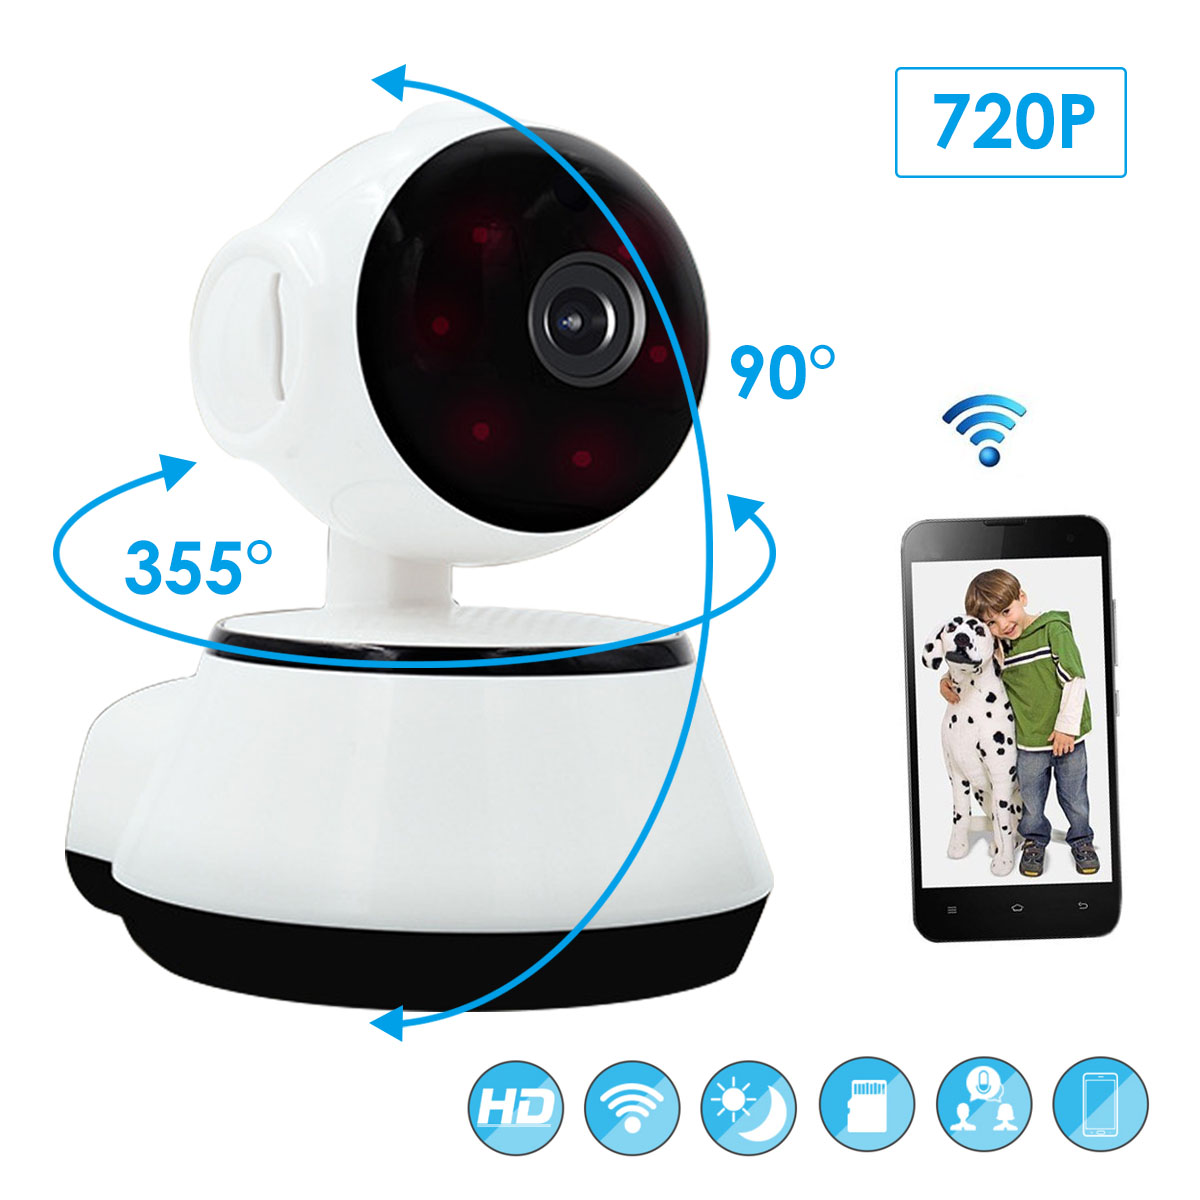 SOONHUA 720P Home Security IP Camera V380 Wireless Body Camera WiFi Audio Record Surveillance Night Vision Baby Monitor CamSOONHUA 720P Home Security IP Camera V380 Wireless Body Camera WiFi Audio Record Surveillance Night Vision Baby Monitor Cam